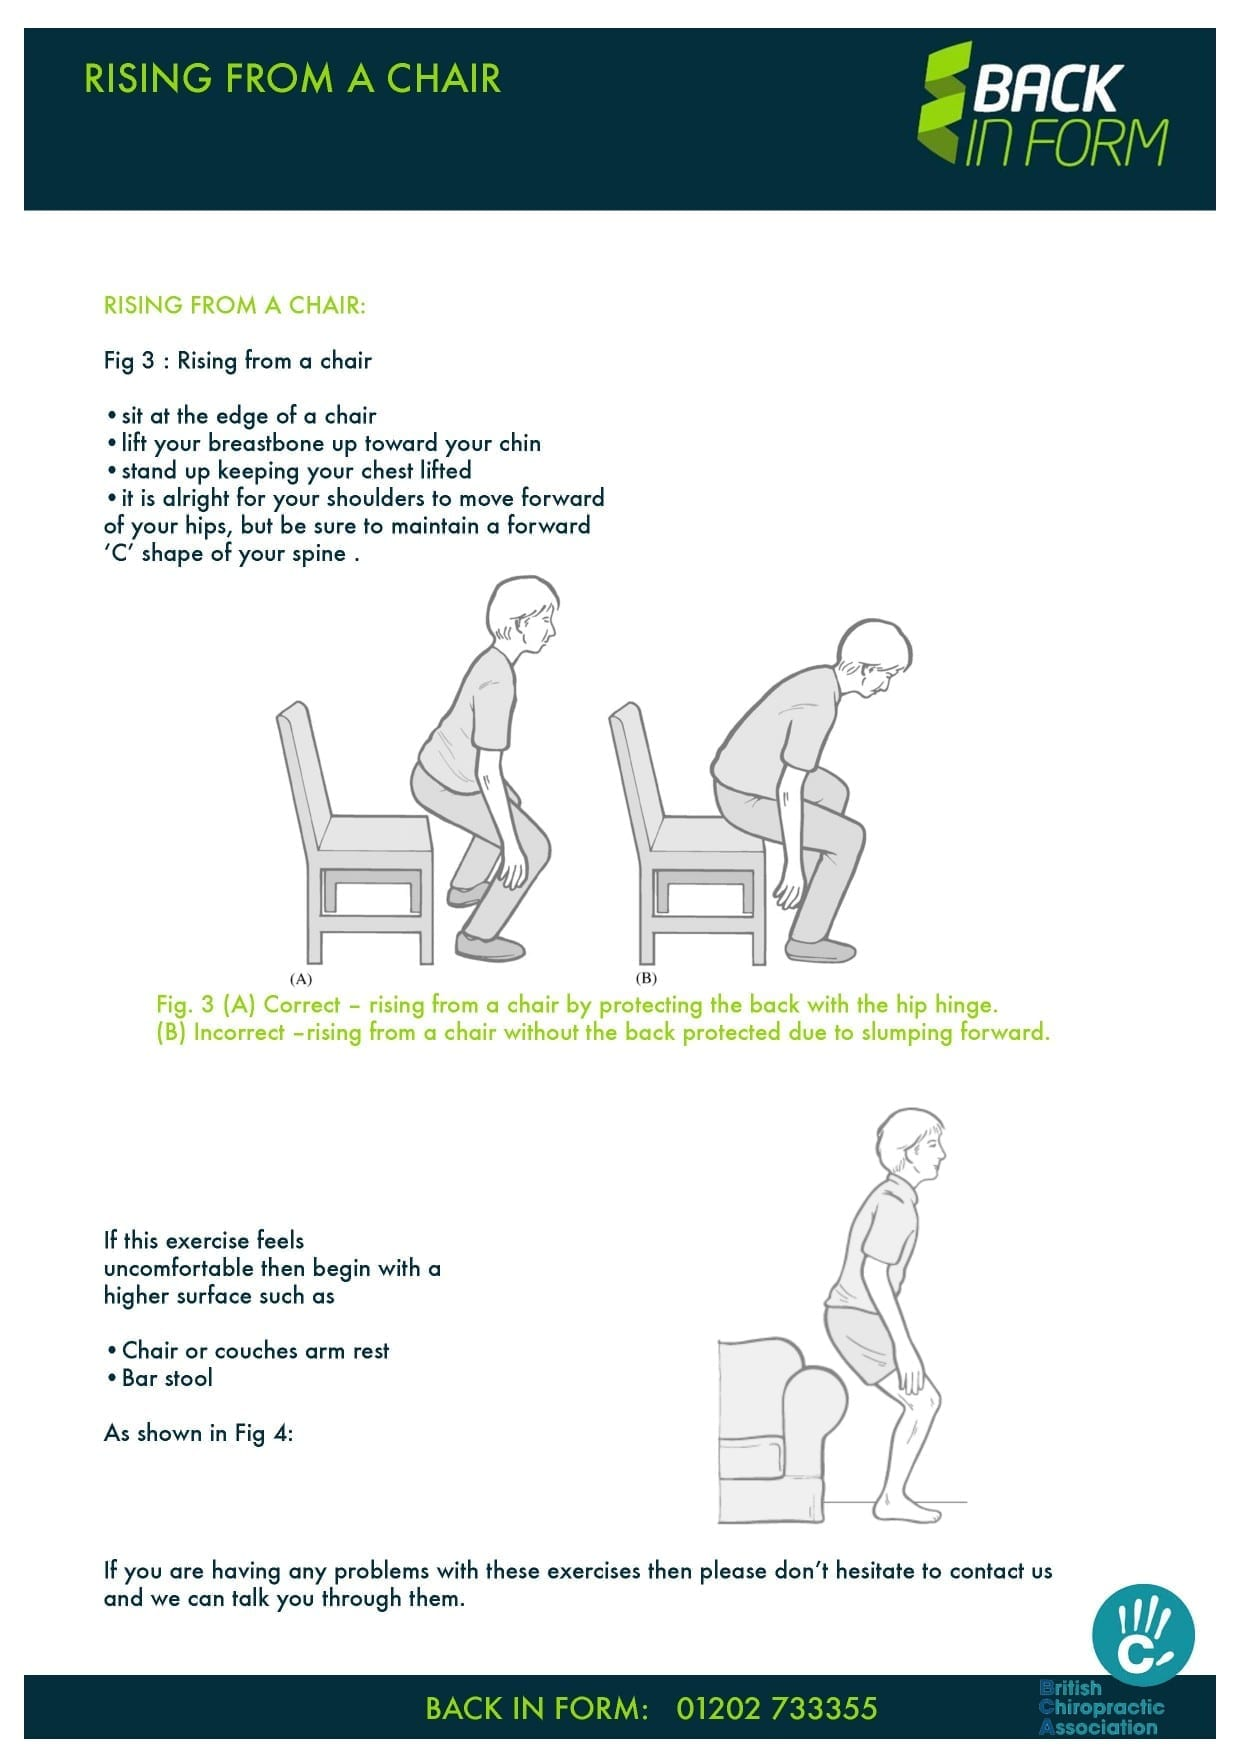 Back Pain Exercise How To Get Up From A Chair Chiropractic